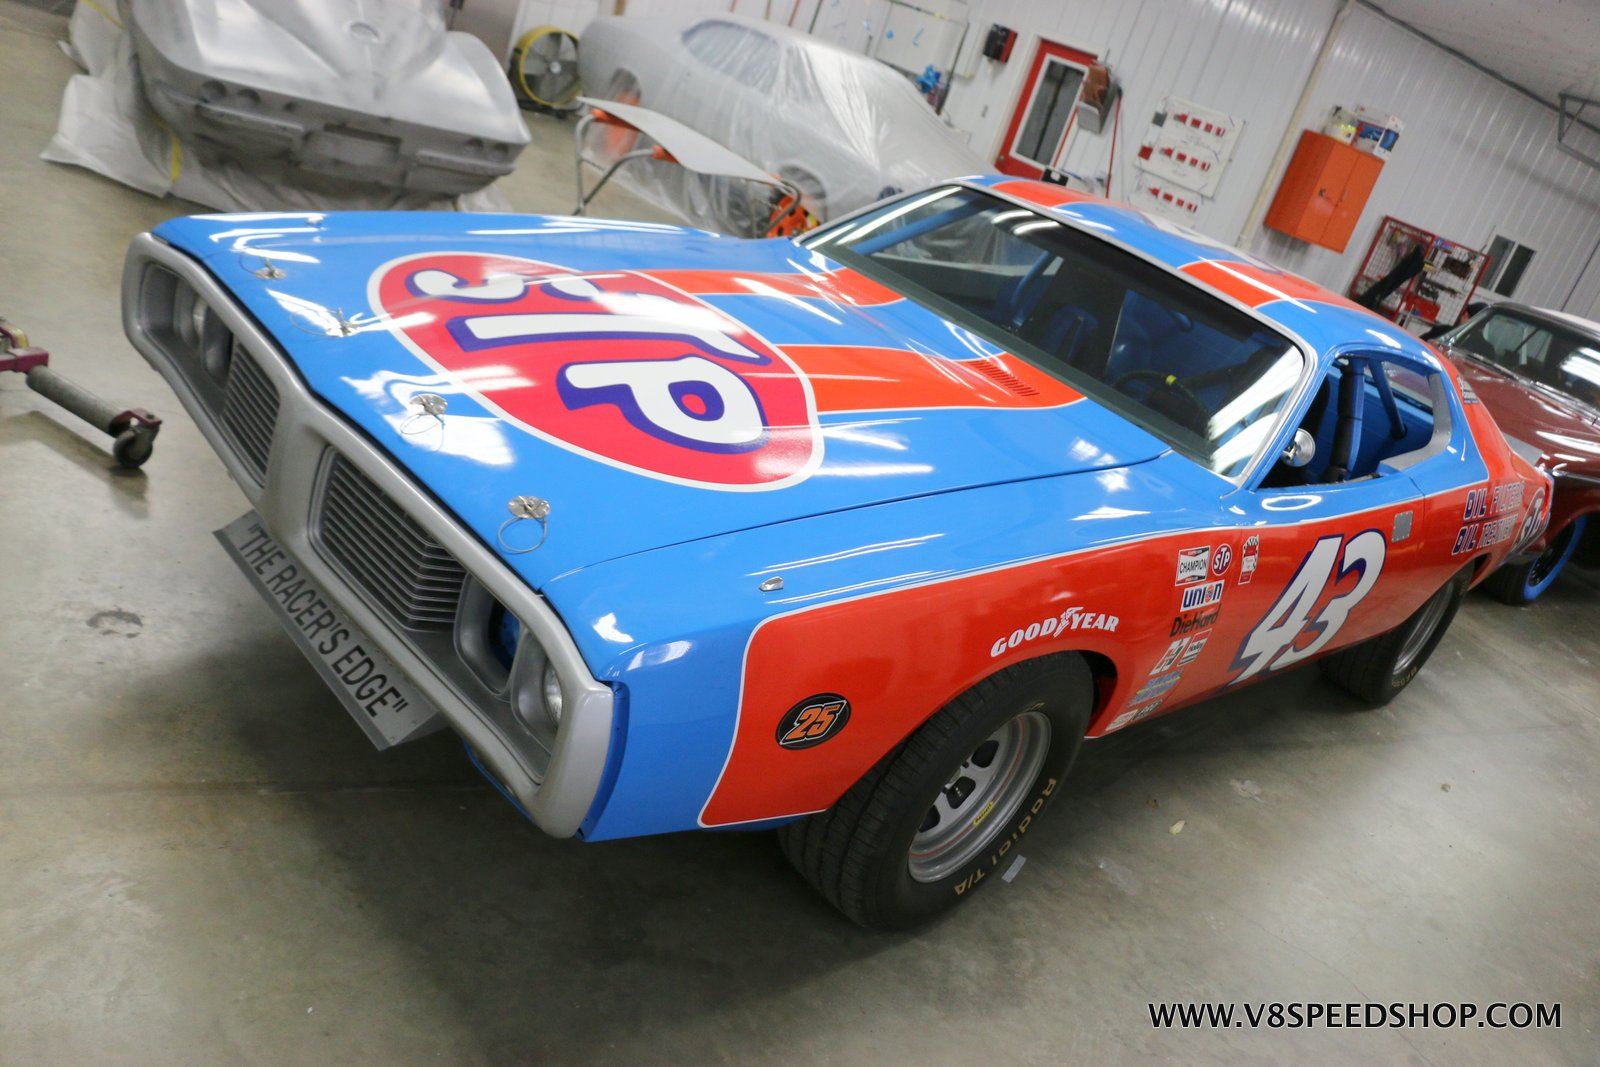 1973 Dodge Charger Richard Petty Stock Car Maintenance at V8 Speed and Resto Shop